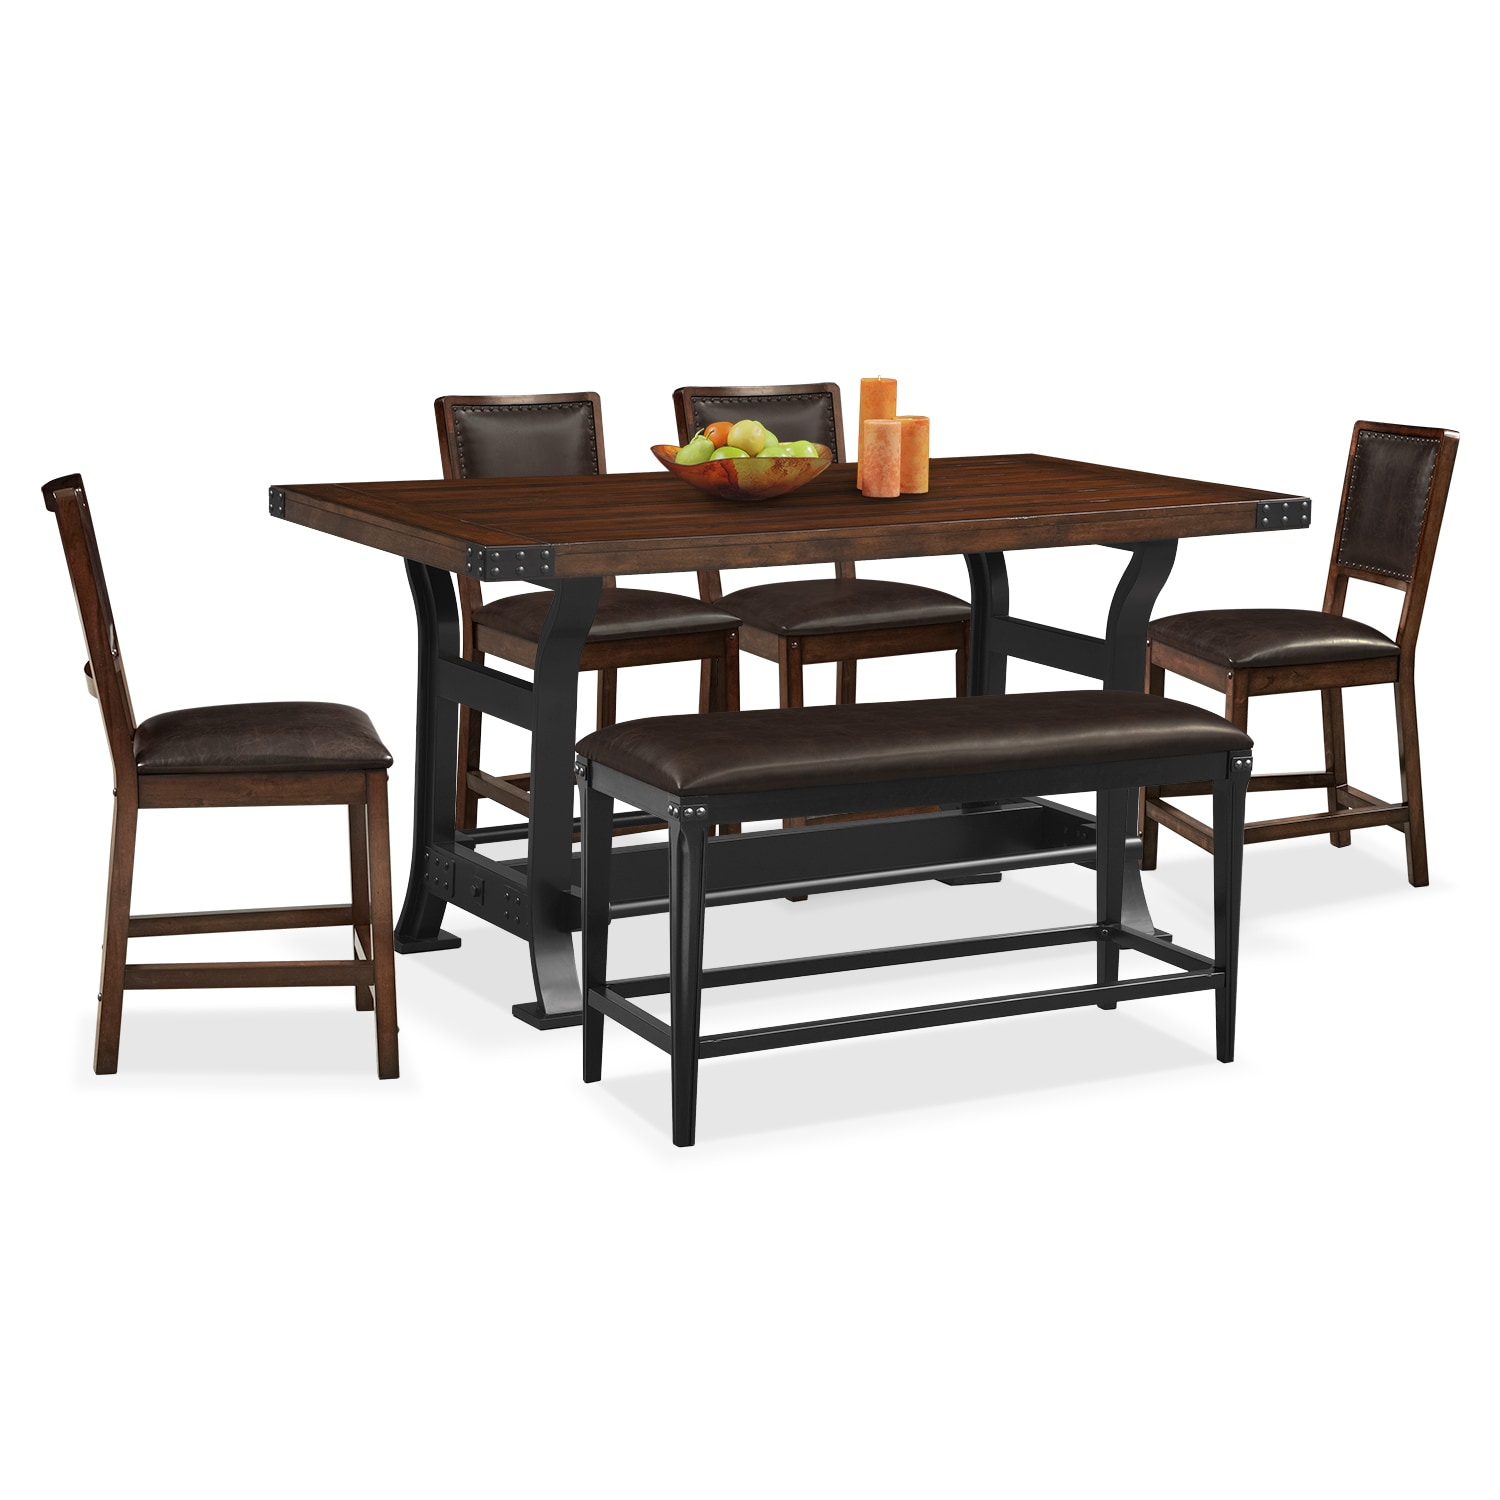 Newcastle Counter-Height Dining Table, 4 Side Chairs And